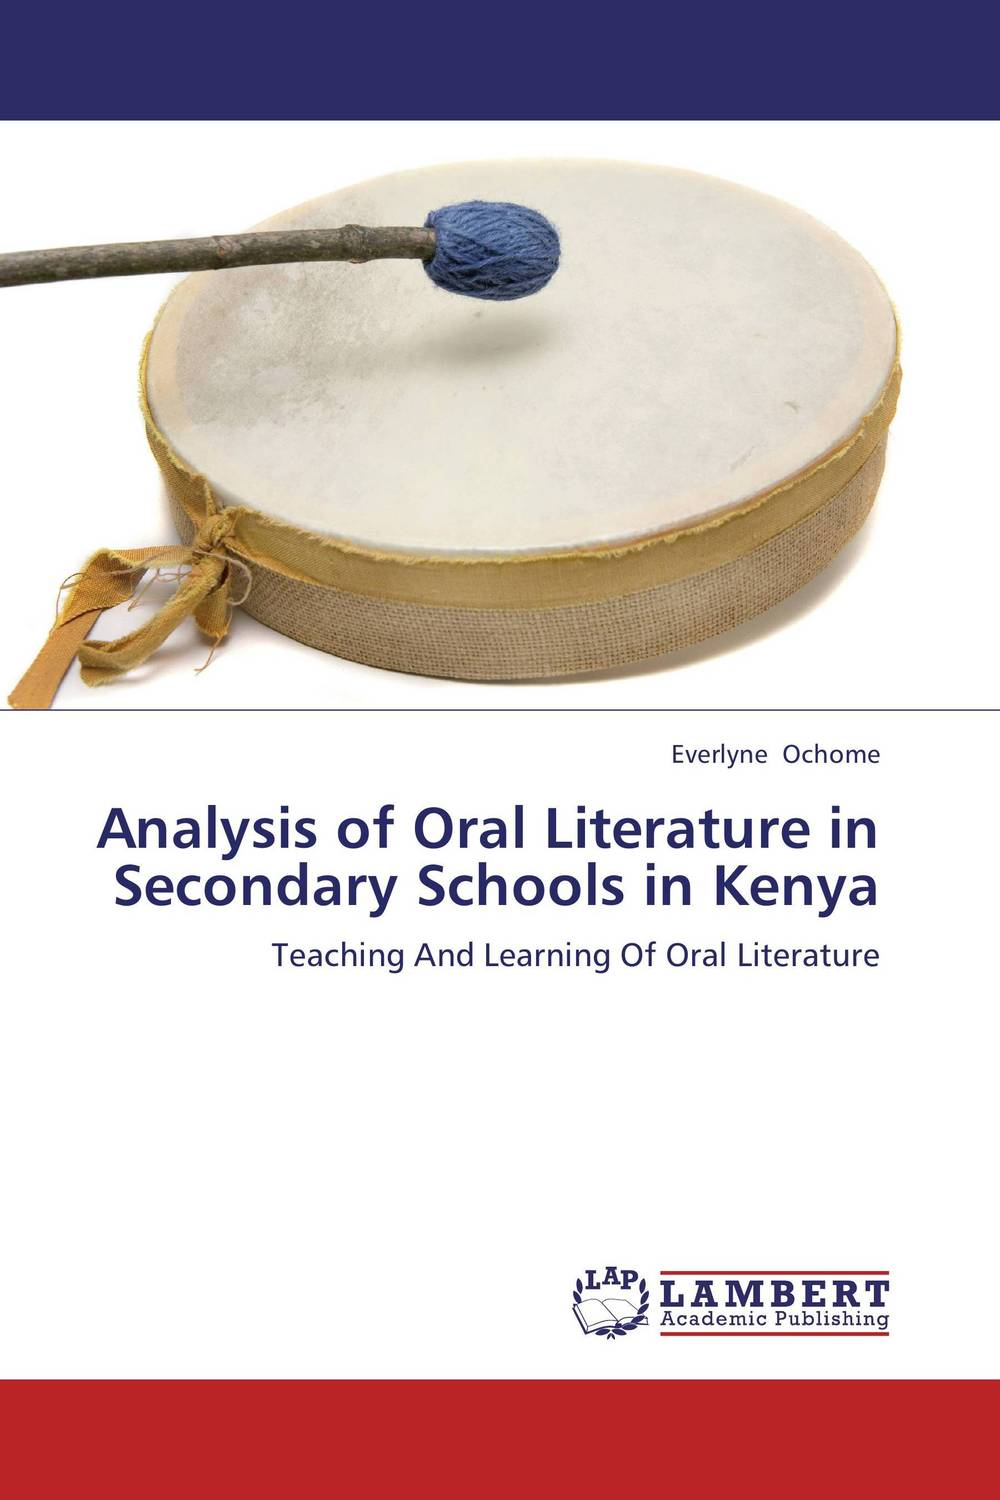 Analysis of Oral Literature in Secondary Schools in Kenya female head teachers administrative challenges in schools in kenya